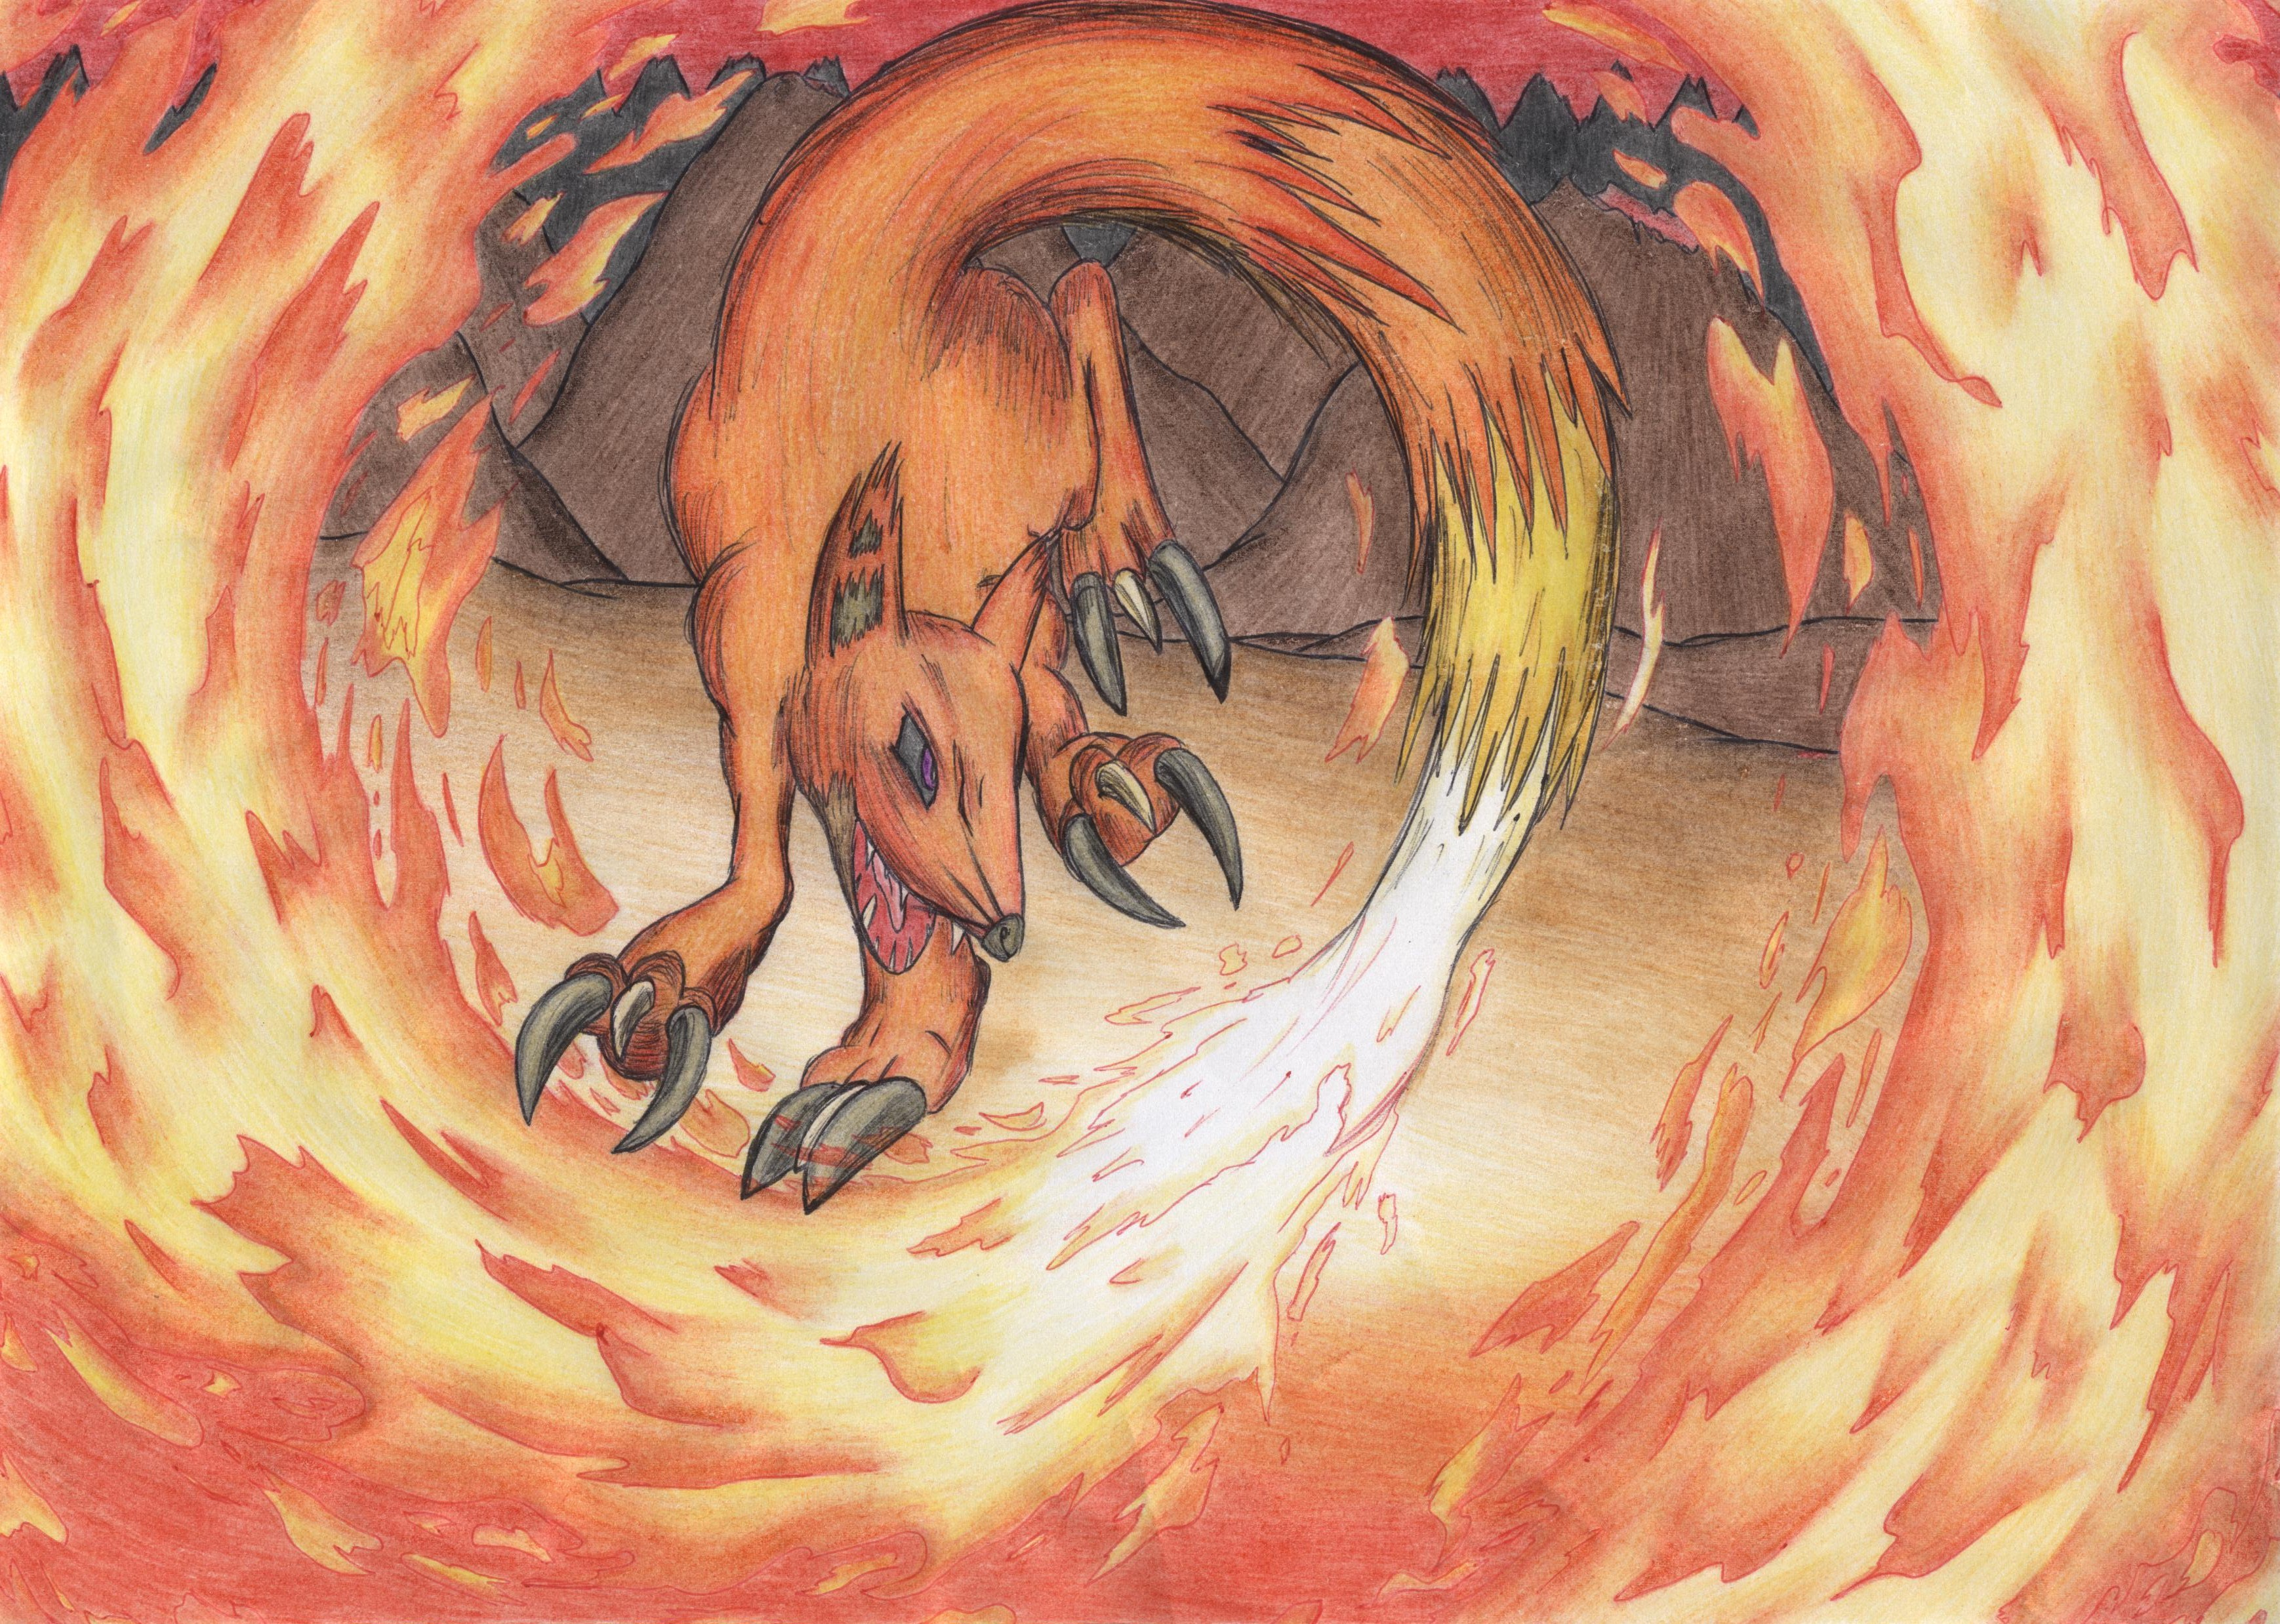 Engwulf: Incinerating Fire Fox